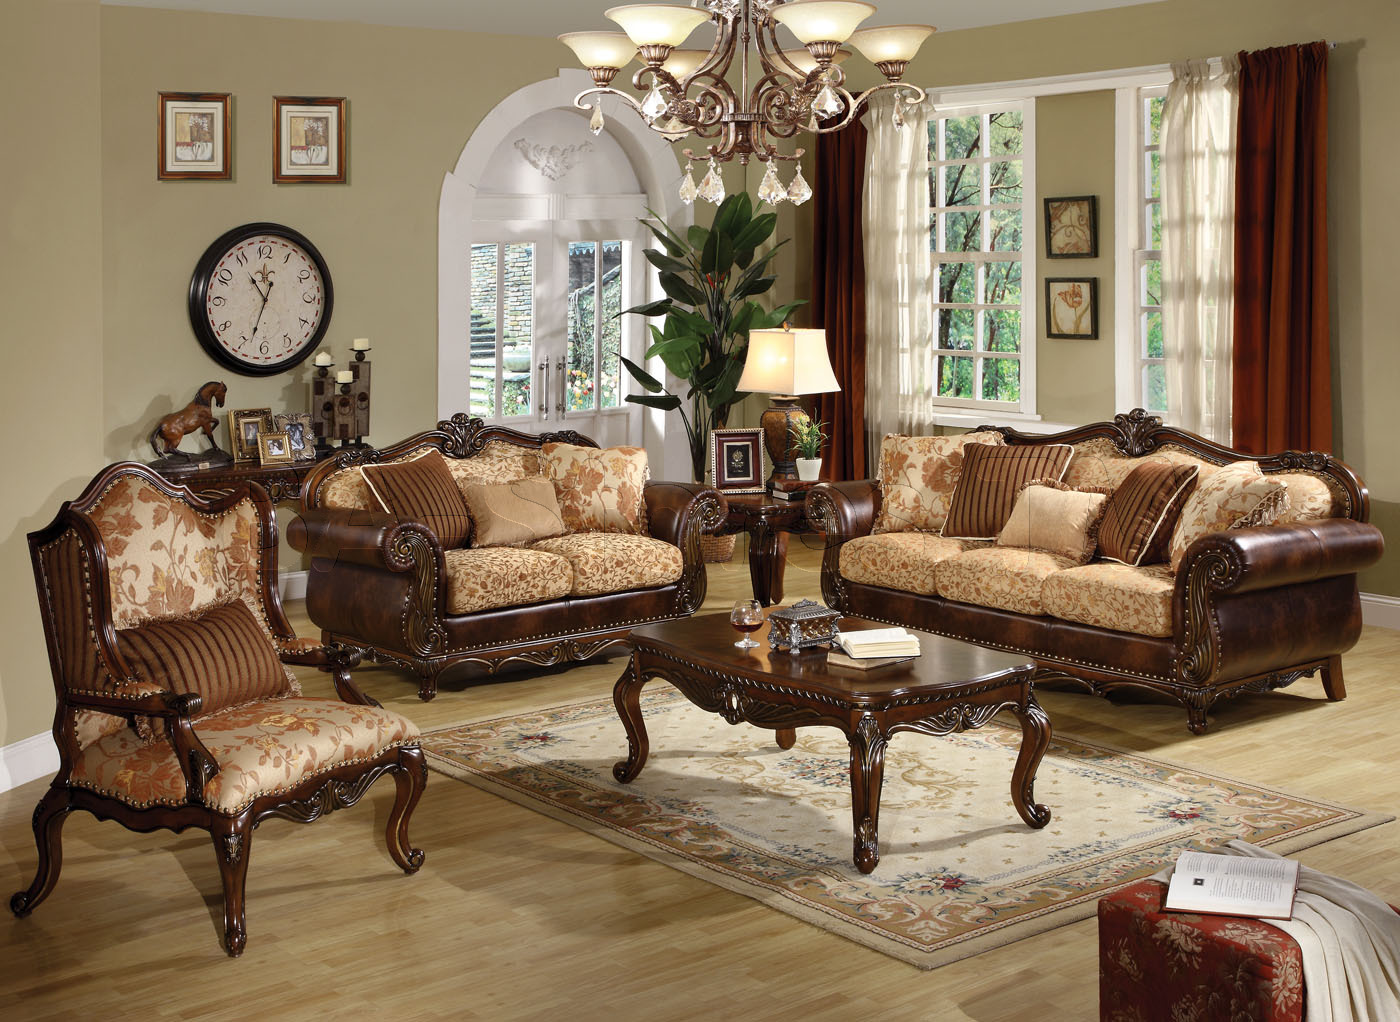 Traditional Dark Wood Furniture Styles Elegant Classic Living Room Design With Antique Lighting Hanging And Bamboo